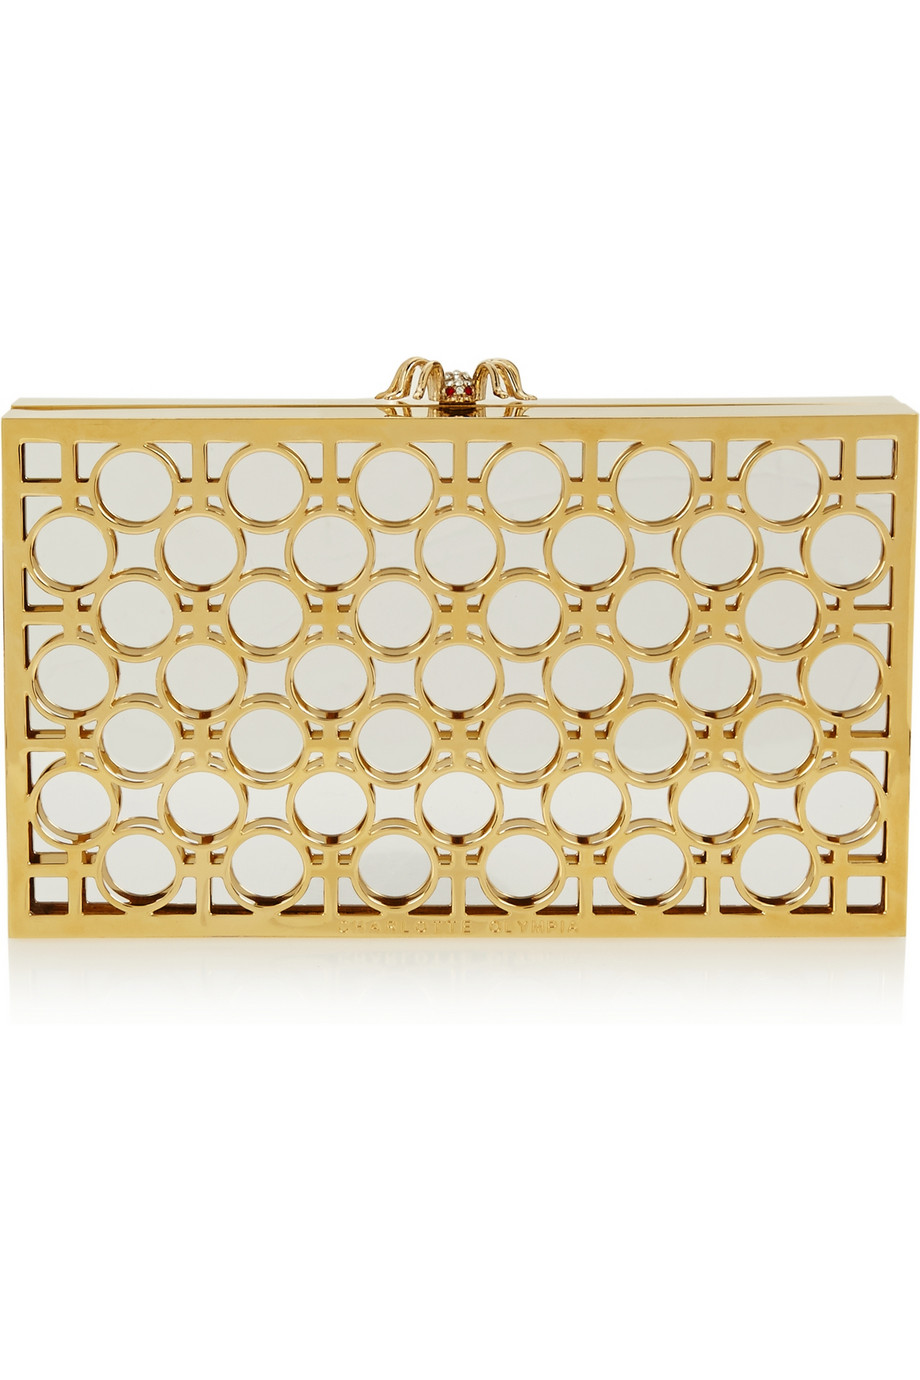 Charlotte Olympia  clutch - was $1,895, now $1,327